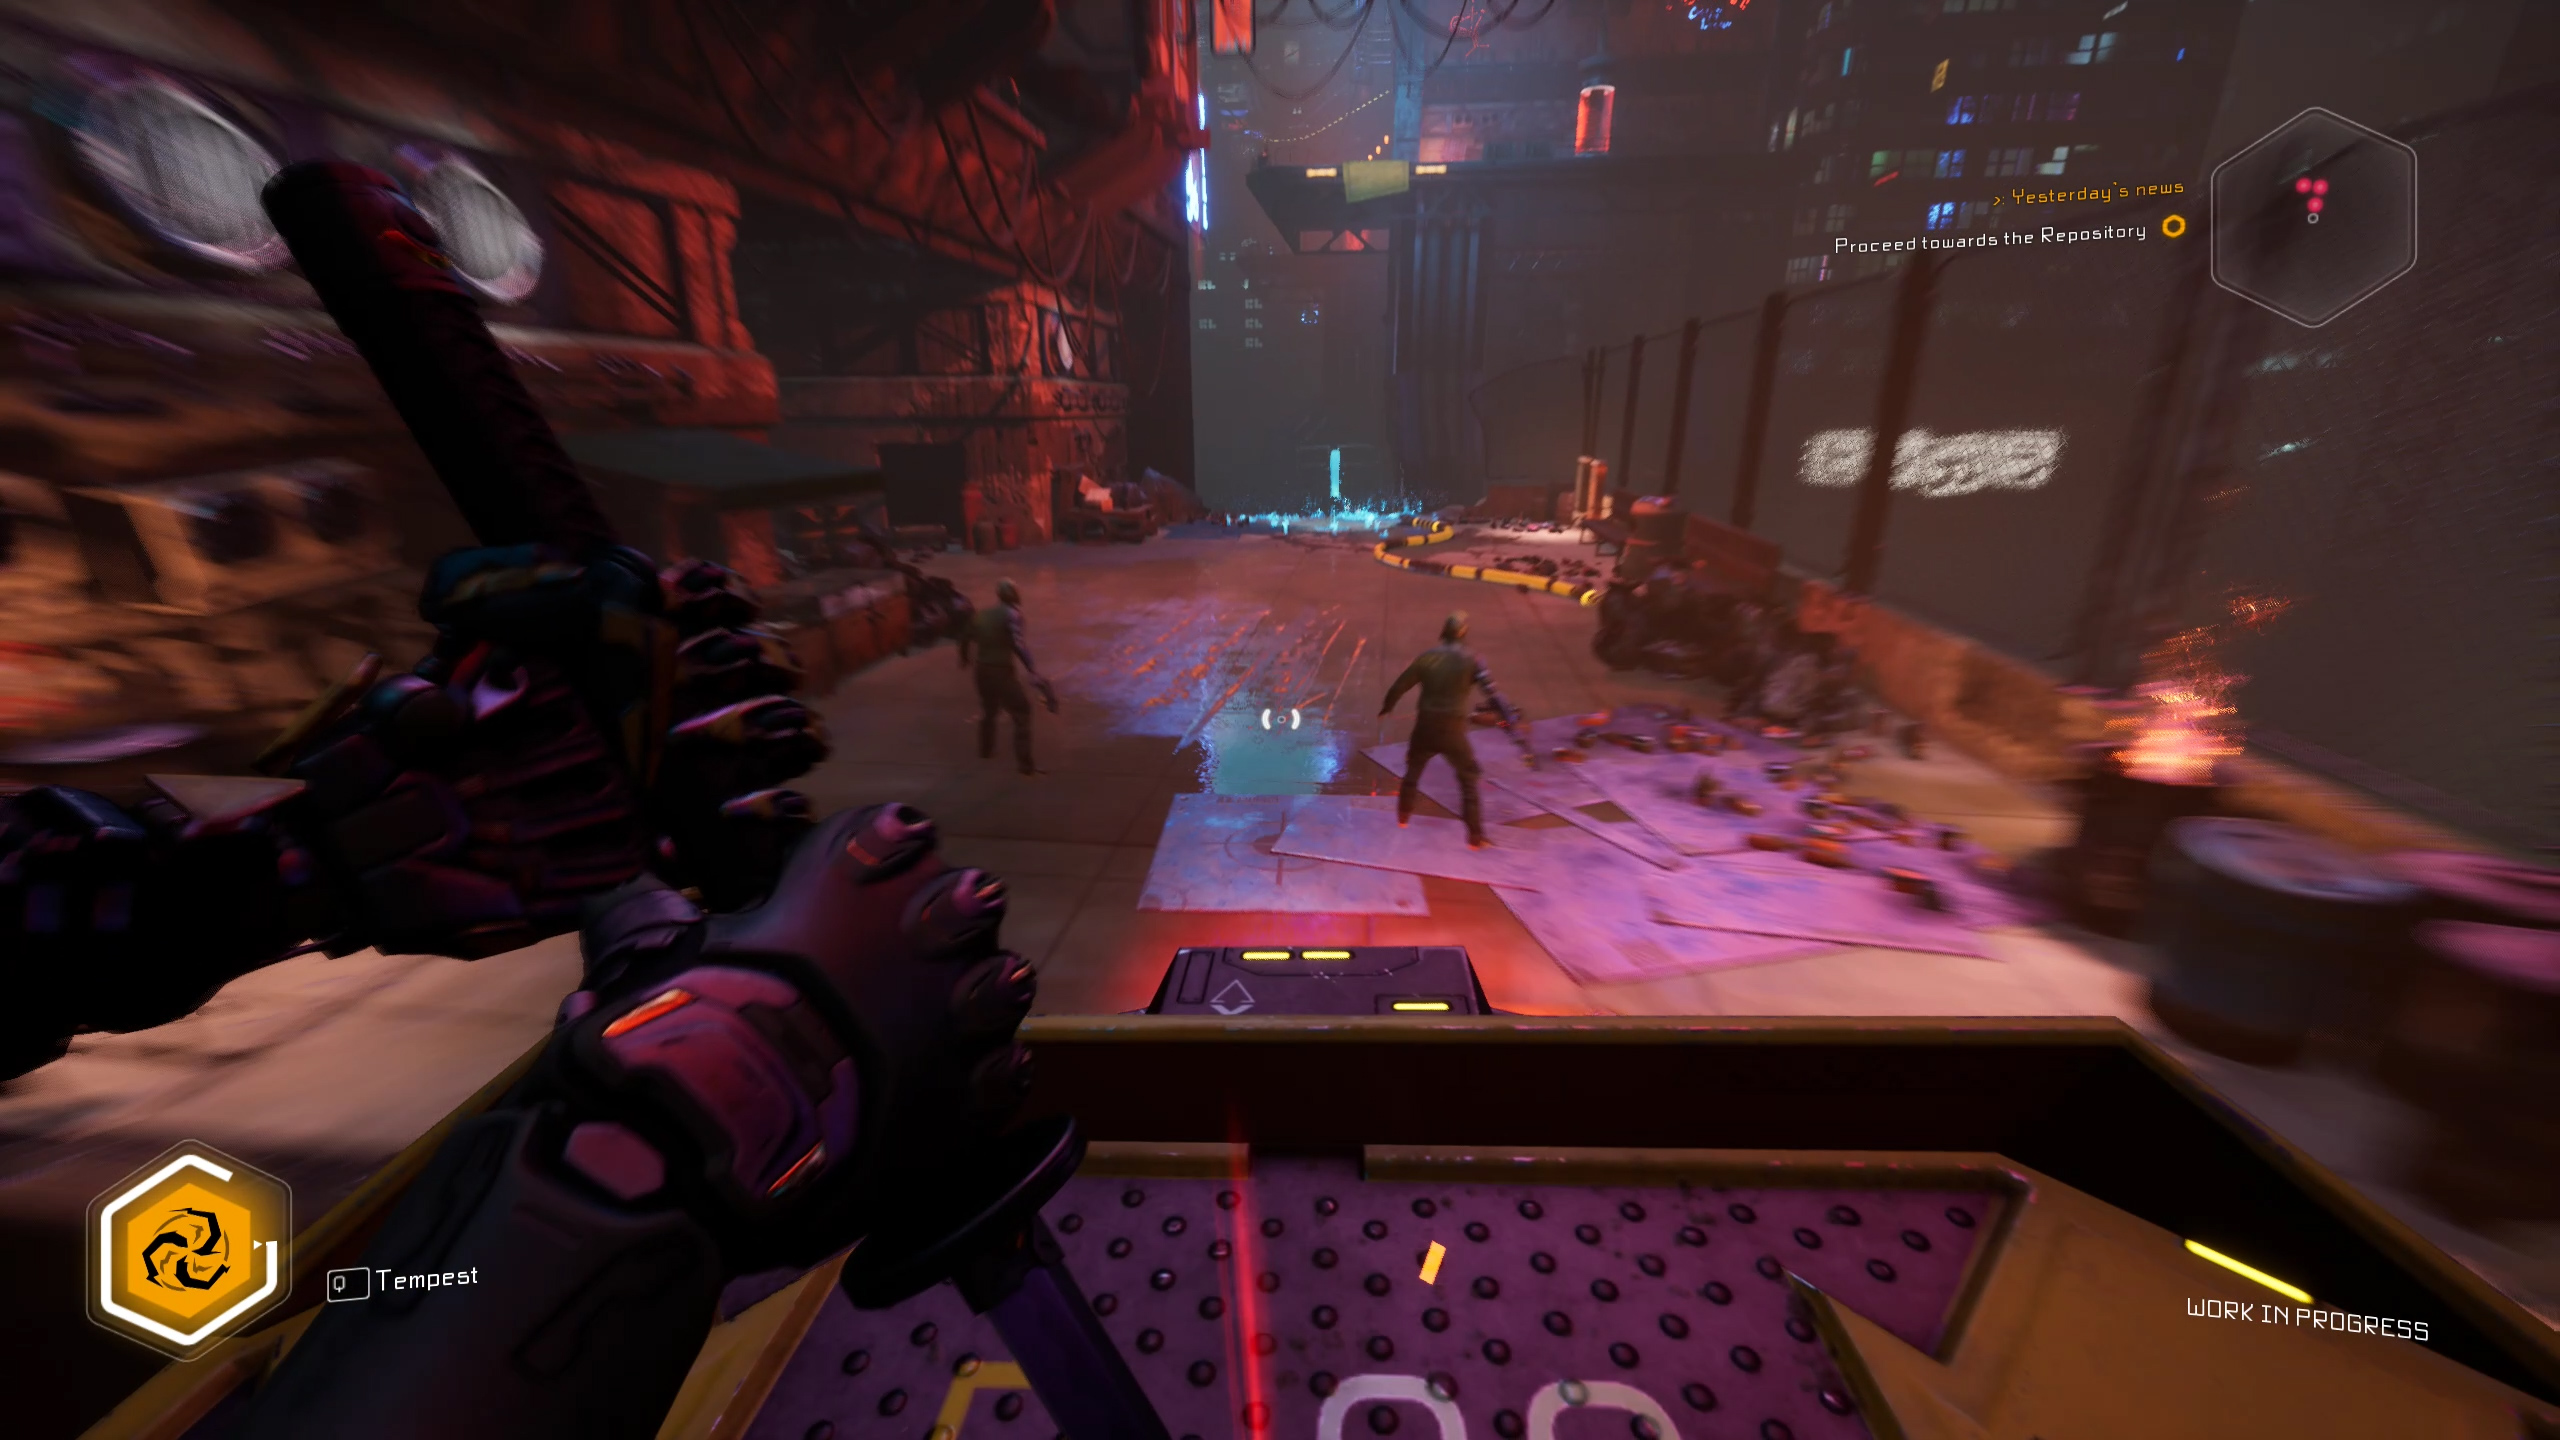 Ghostrunner hands-on preview: Neuromancer meets Hotline Miami | Shacknews